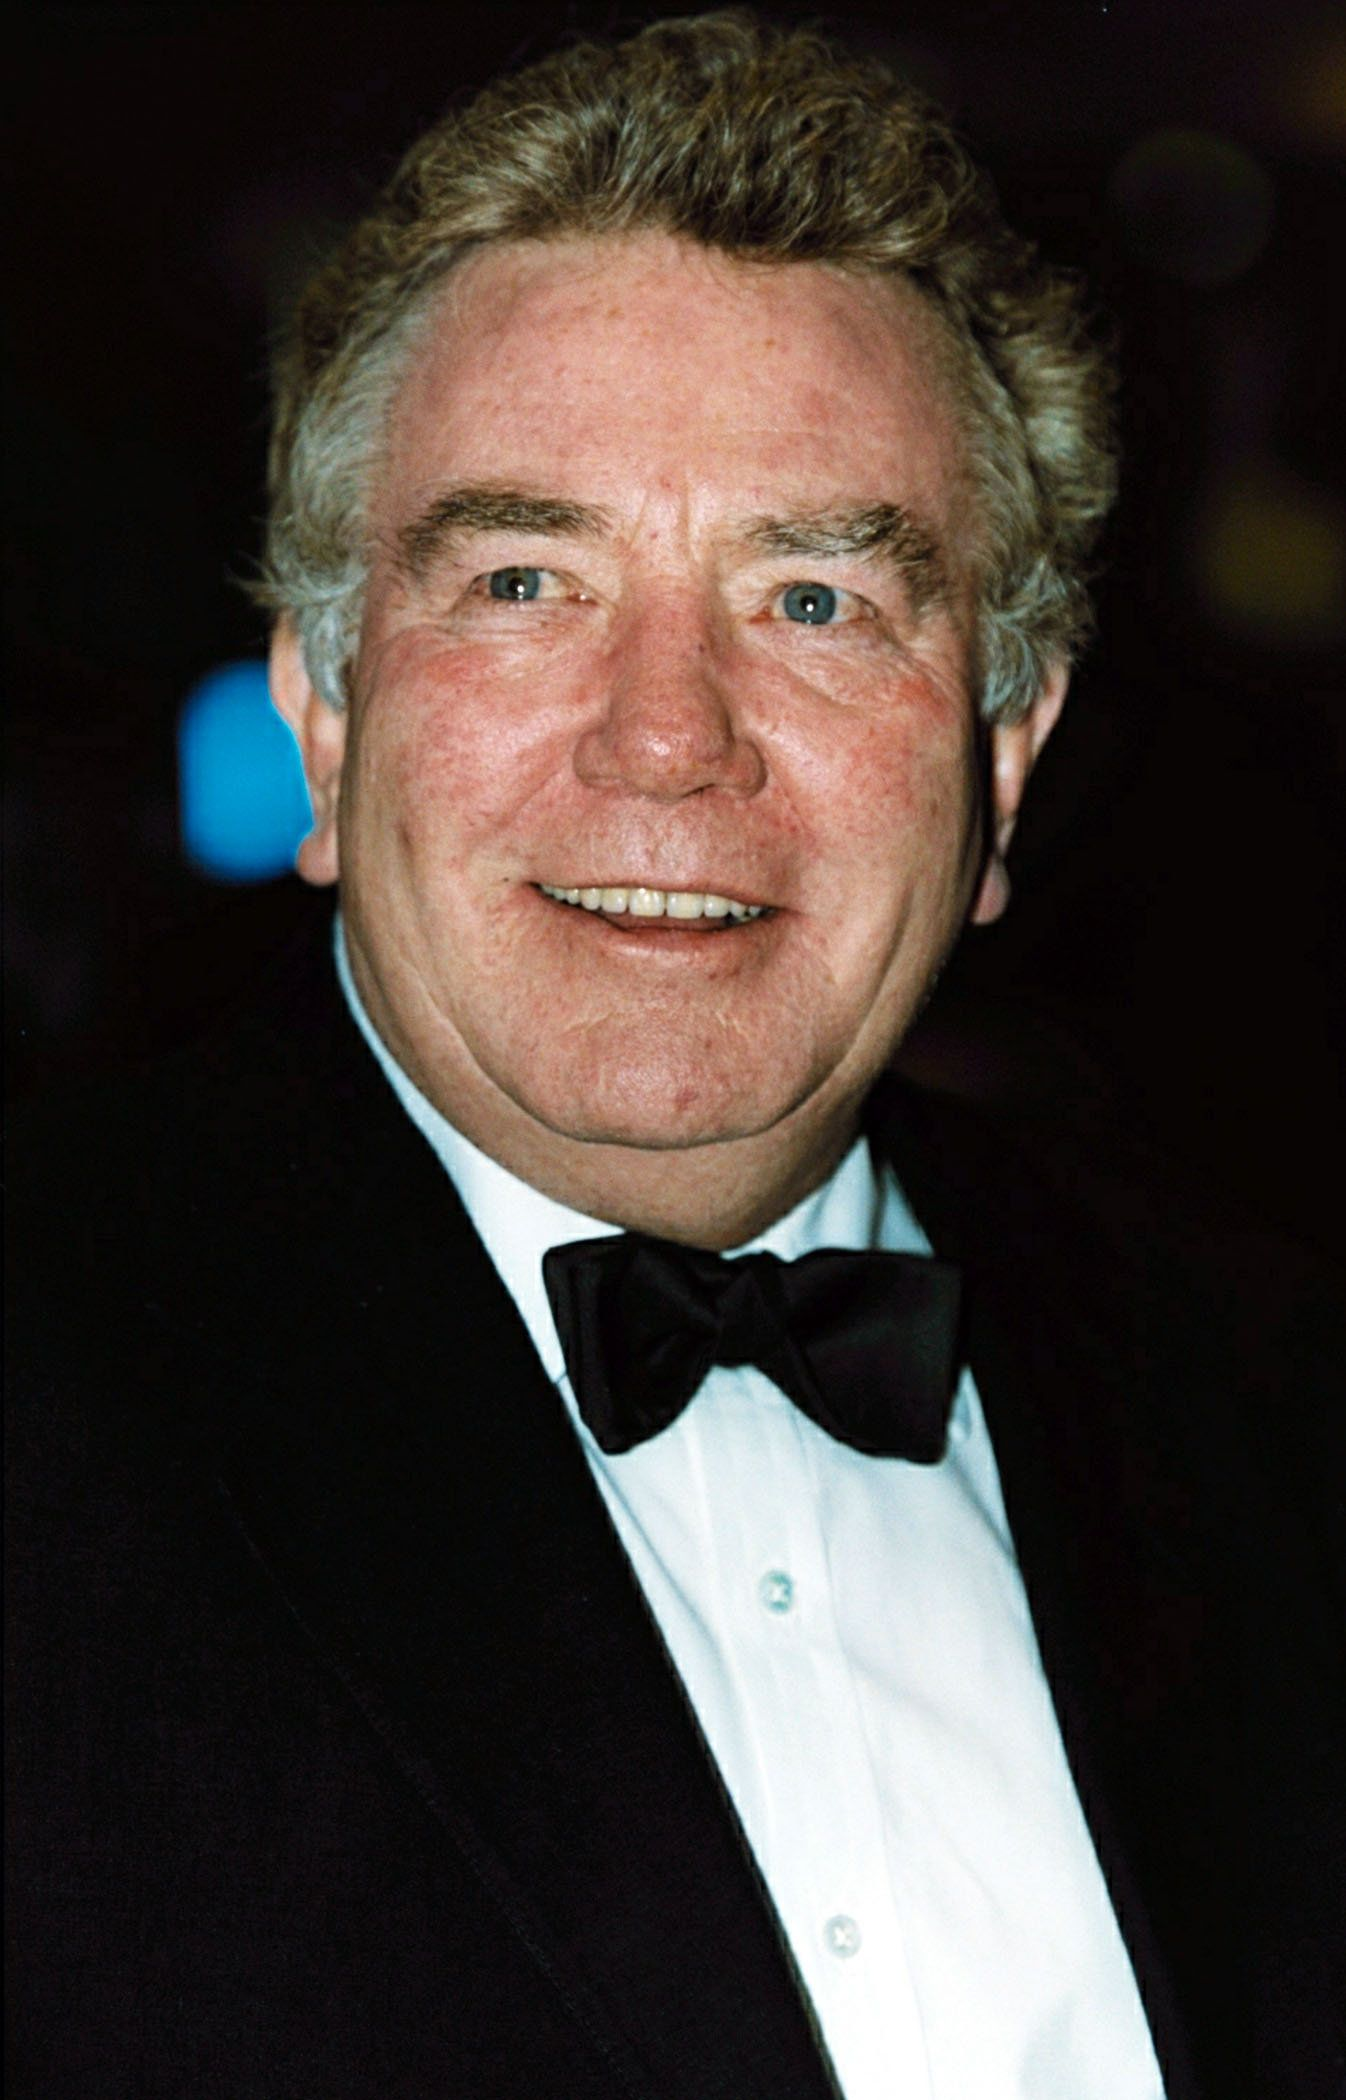 Albert Finney has died at the age of